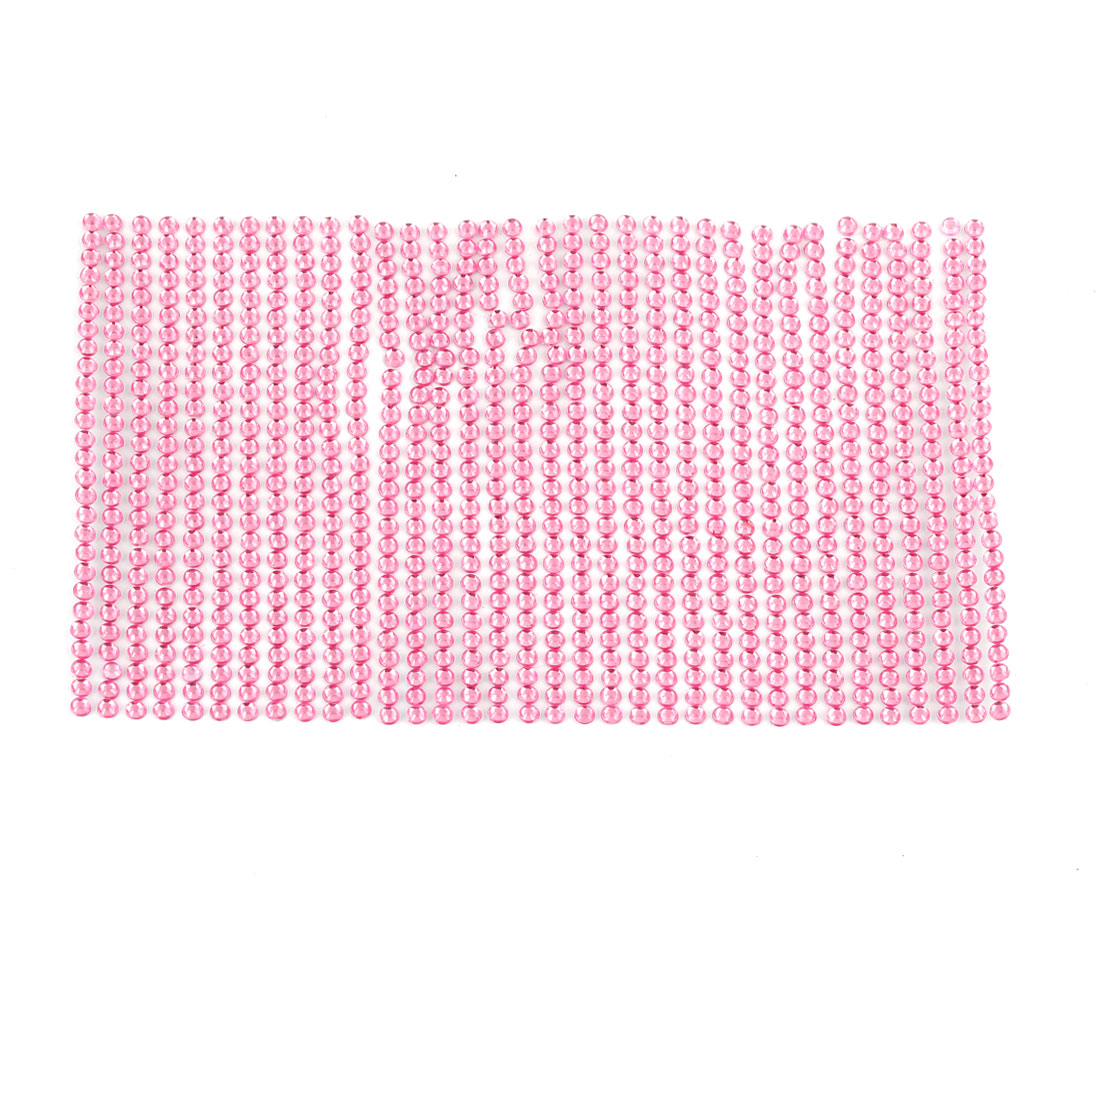 Car Self Adhesive Pink Faux Crystal Sticker Ornament 140mm x 85mm